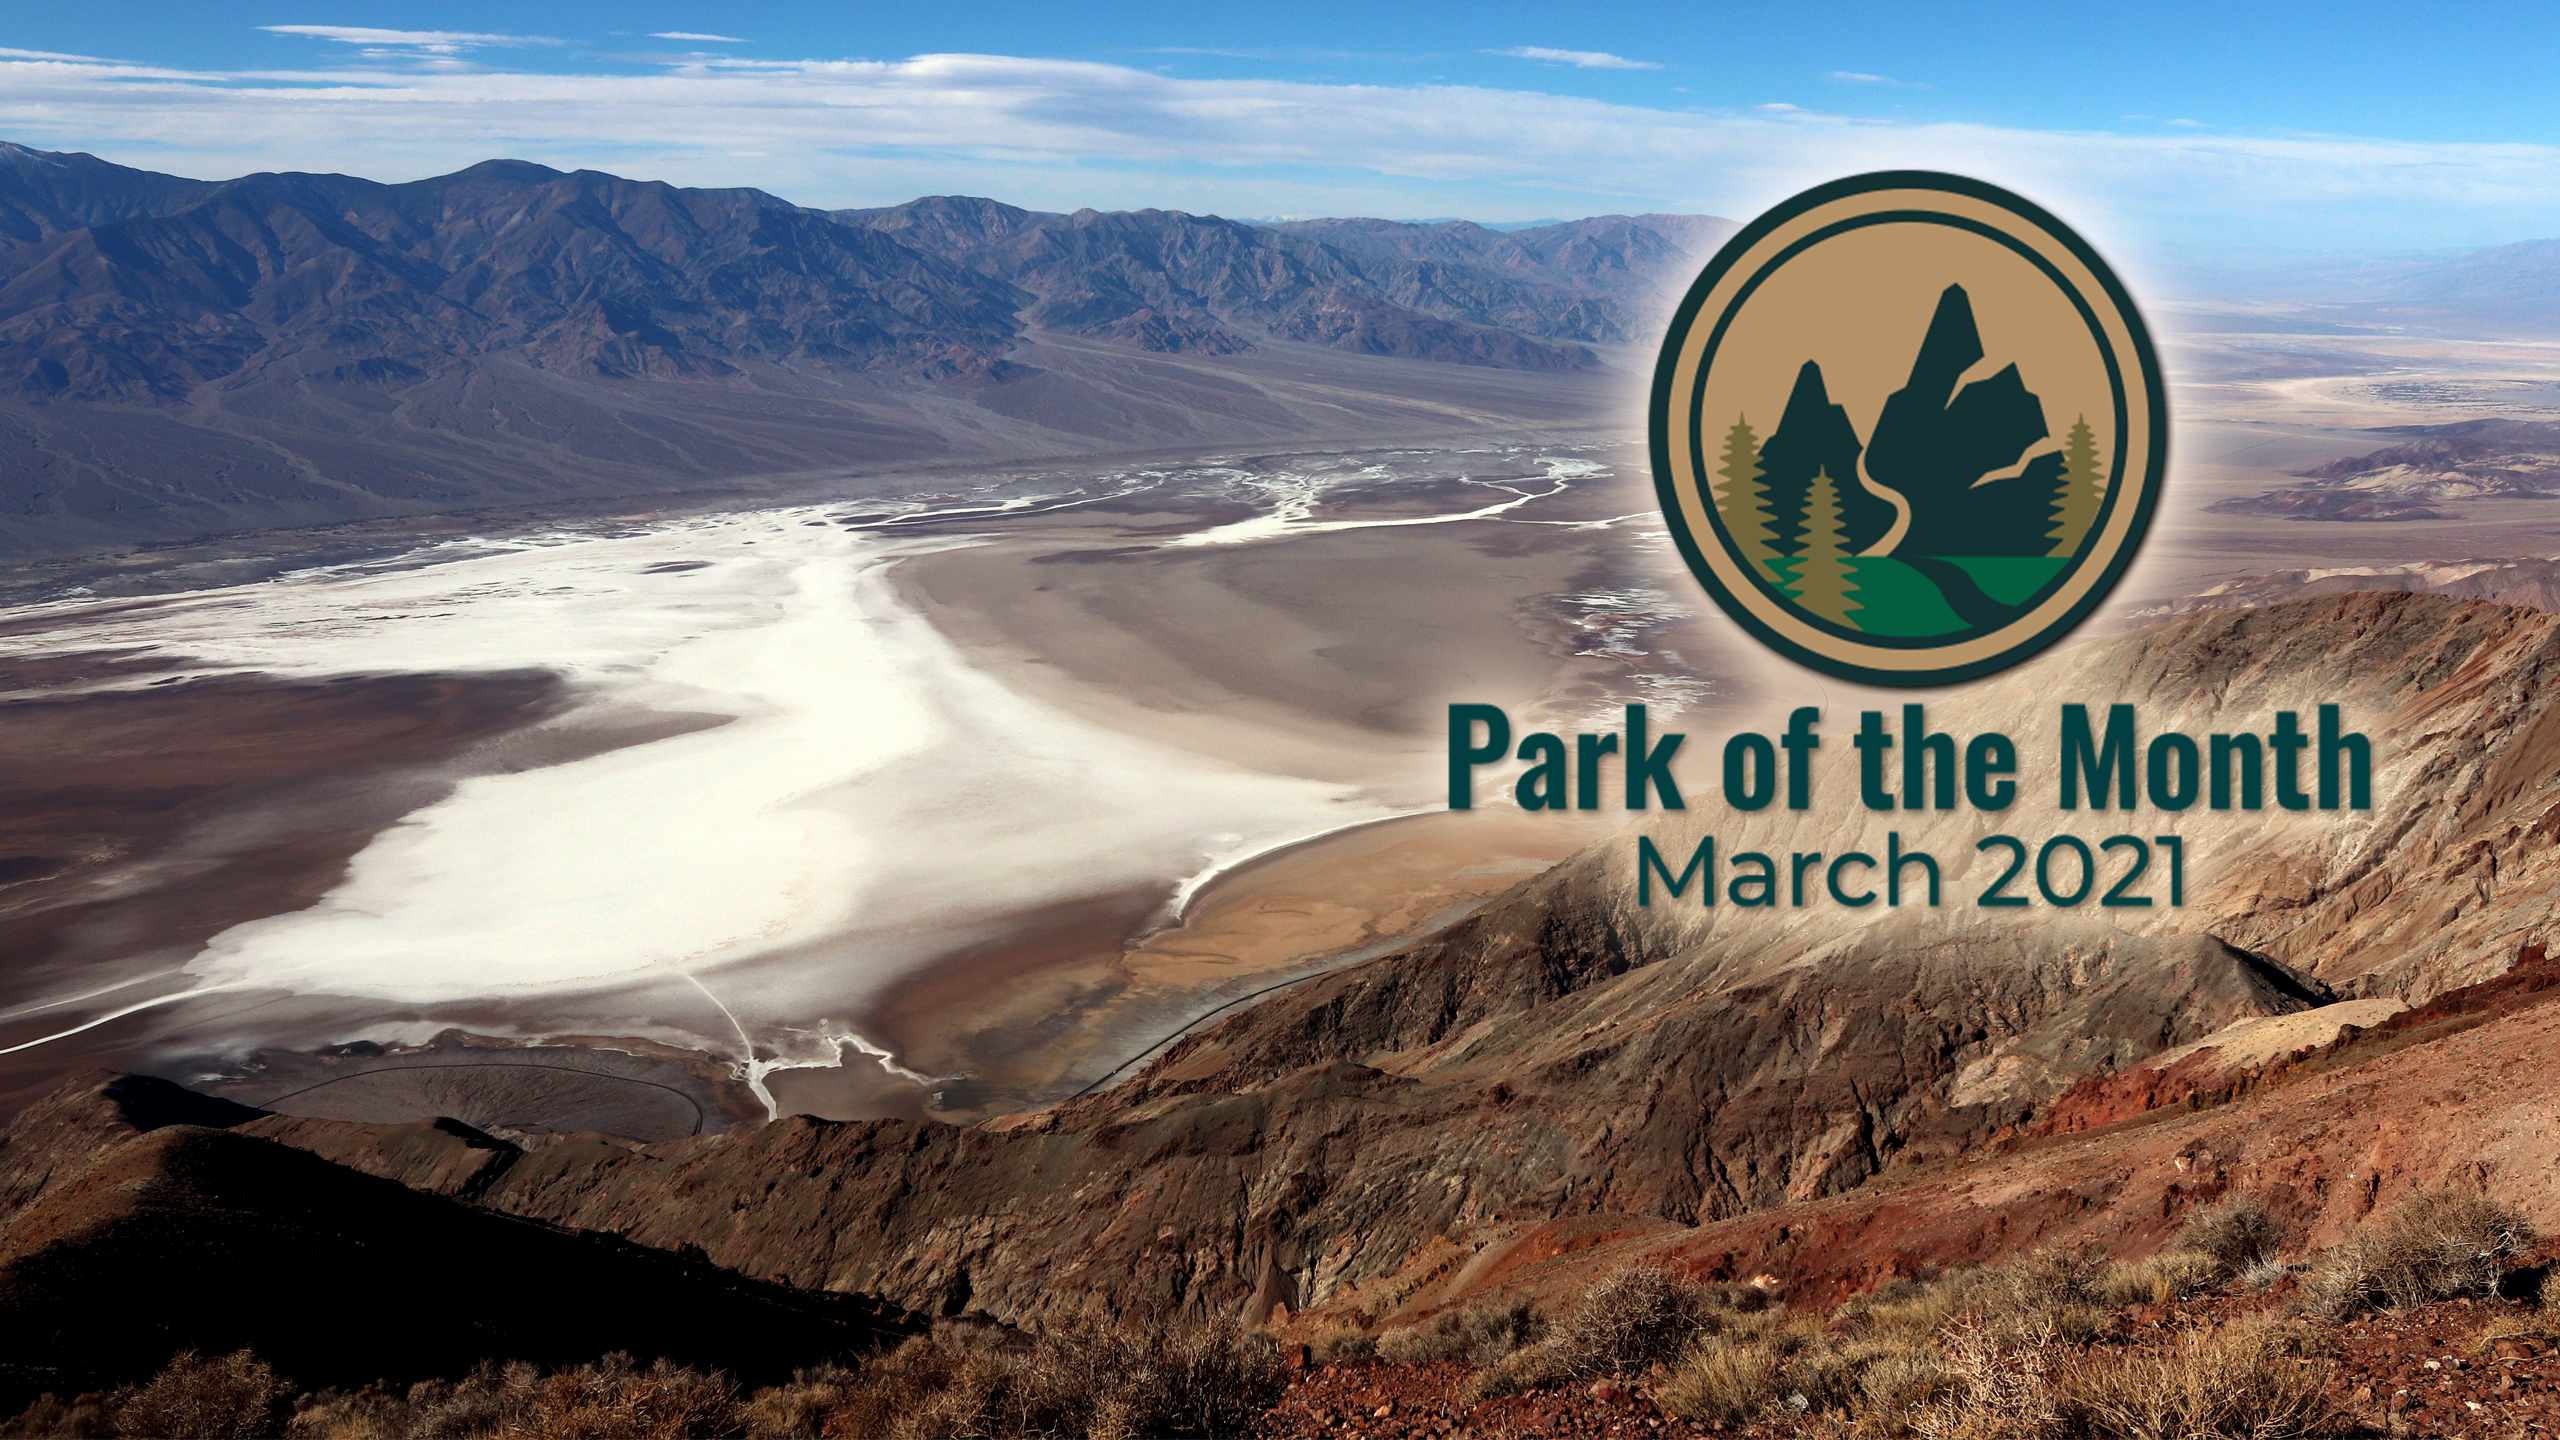 Image of the salt basin and extended valley floor beneath the mountains in Death Valley National Park